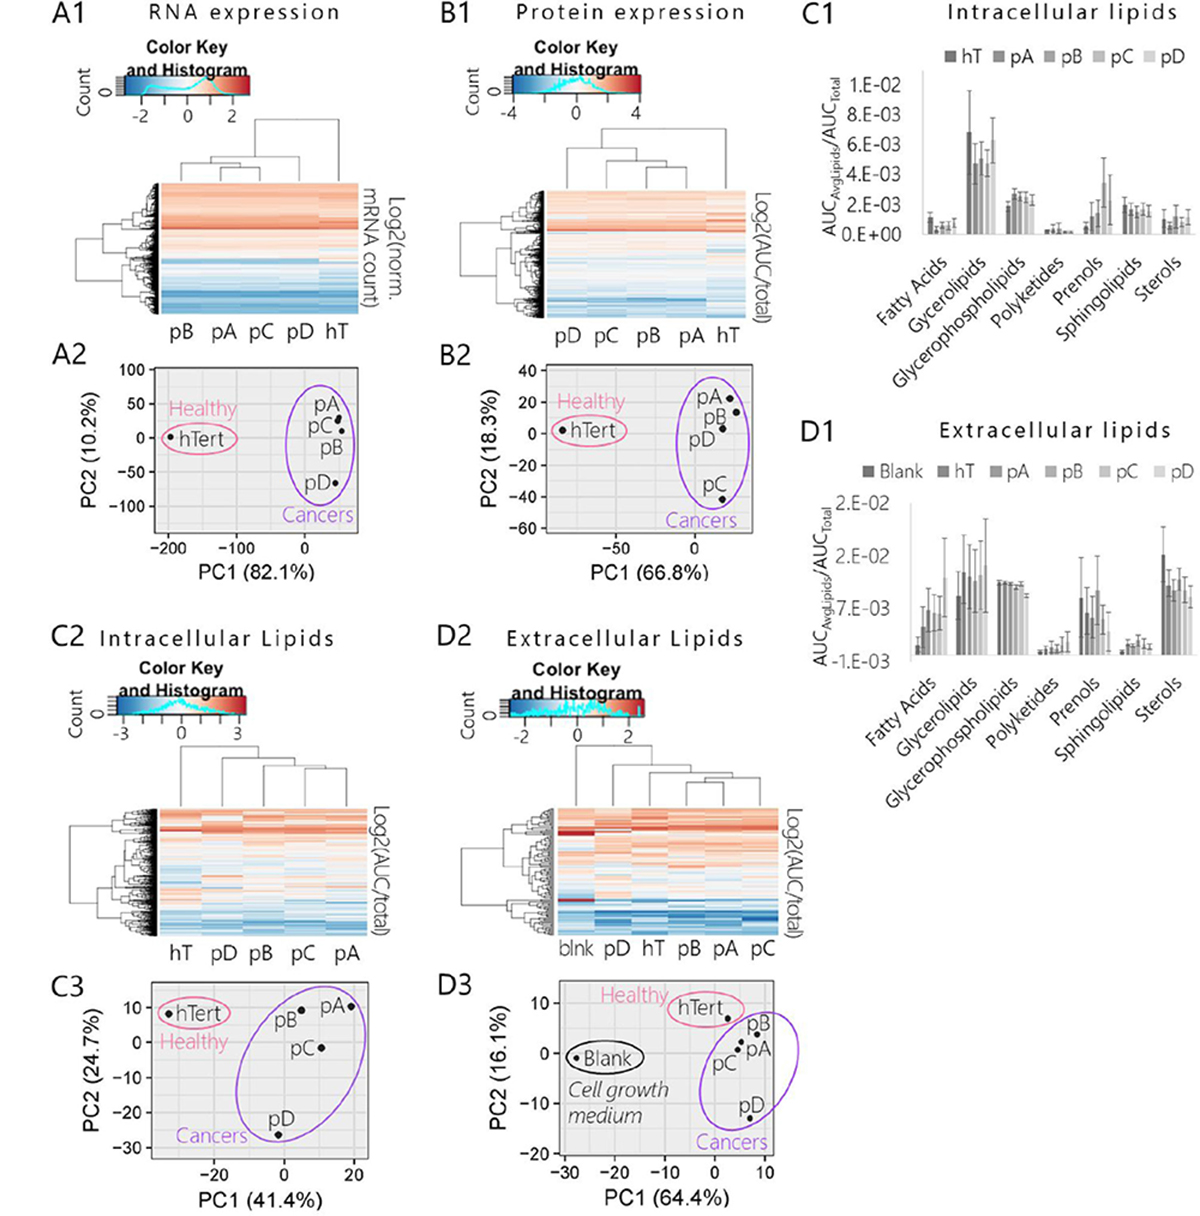 Comparison of mRNA, protein, and lipid expression profiles of pancreatic cancer subclones (pA, pB, pC, pD) and healthy control (hT).